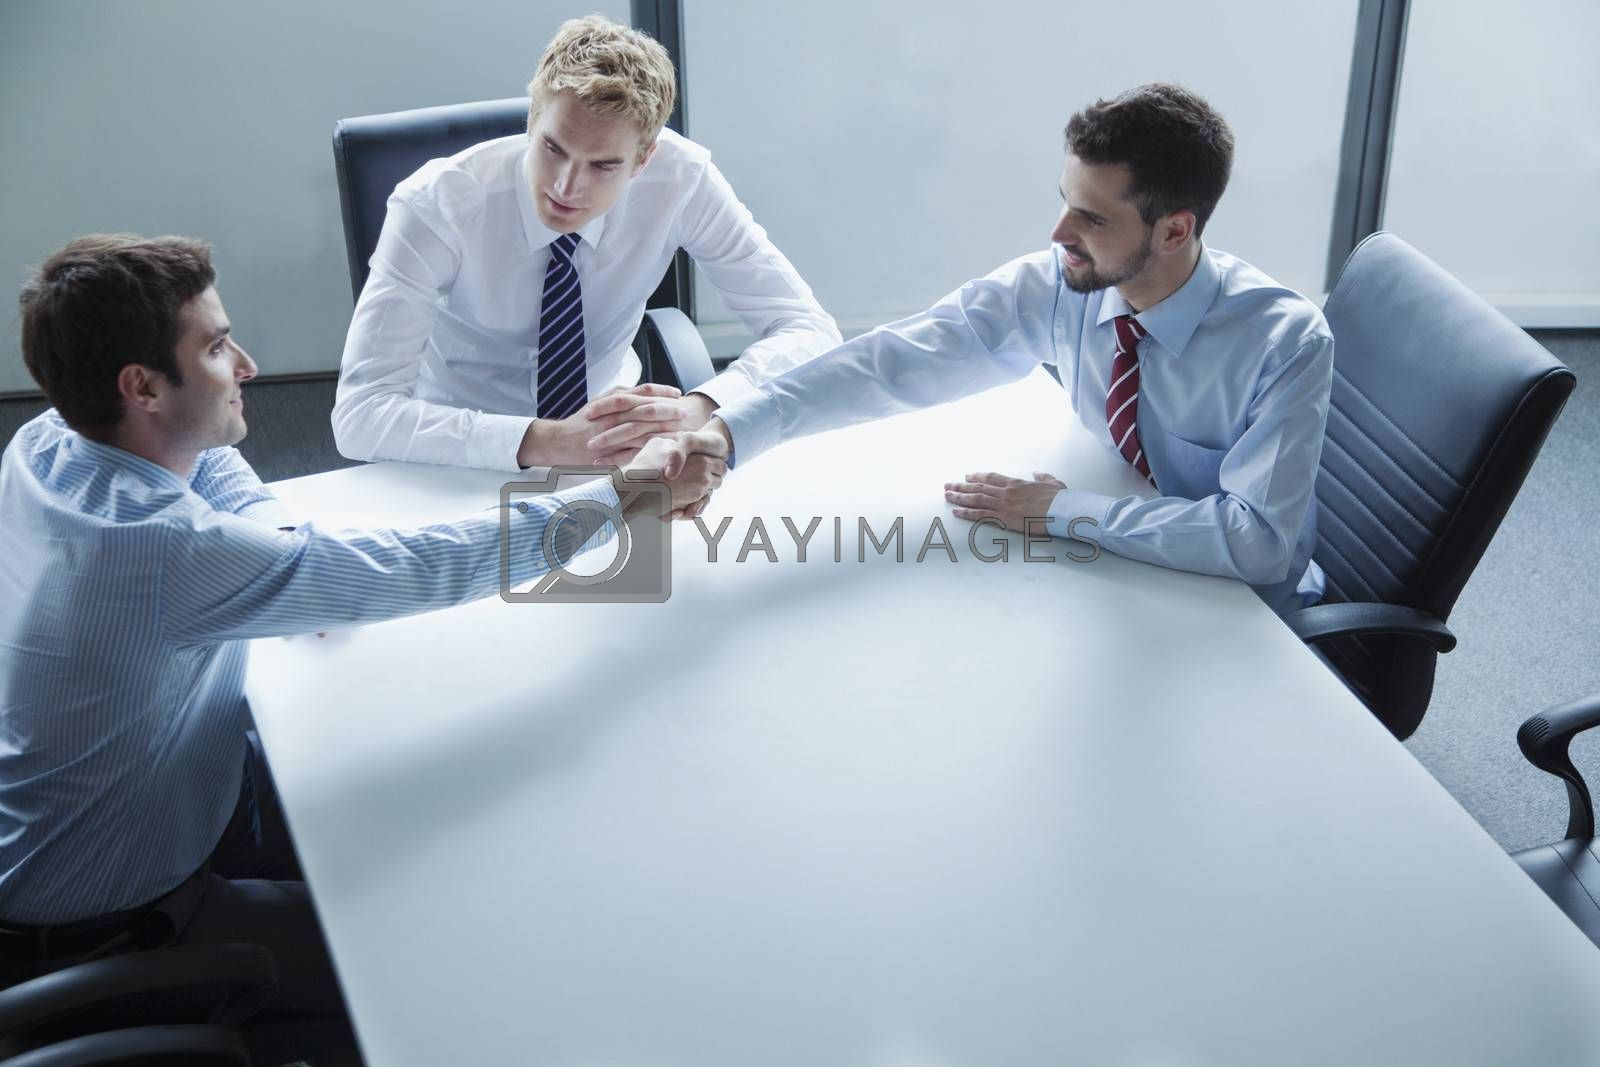 Businessmen shaking hands over the table in the office